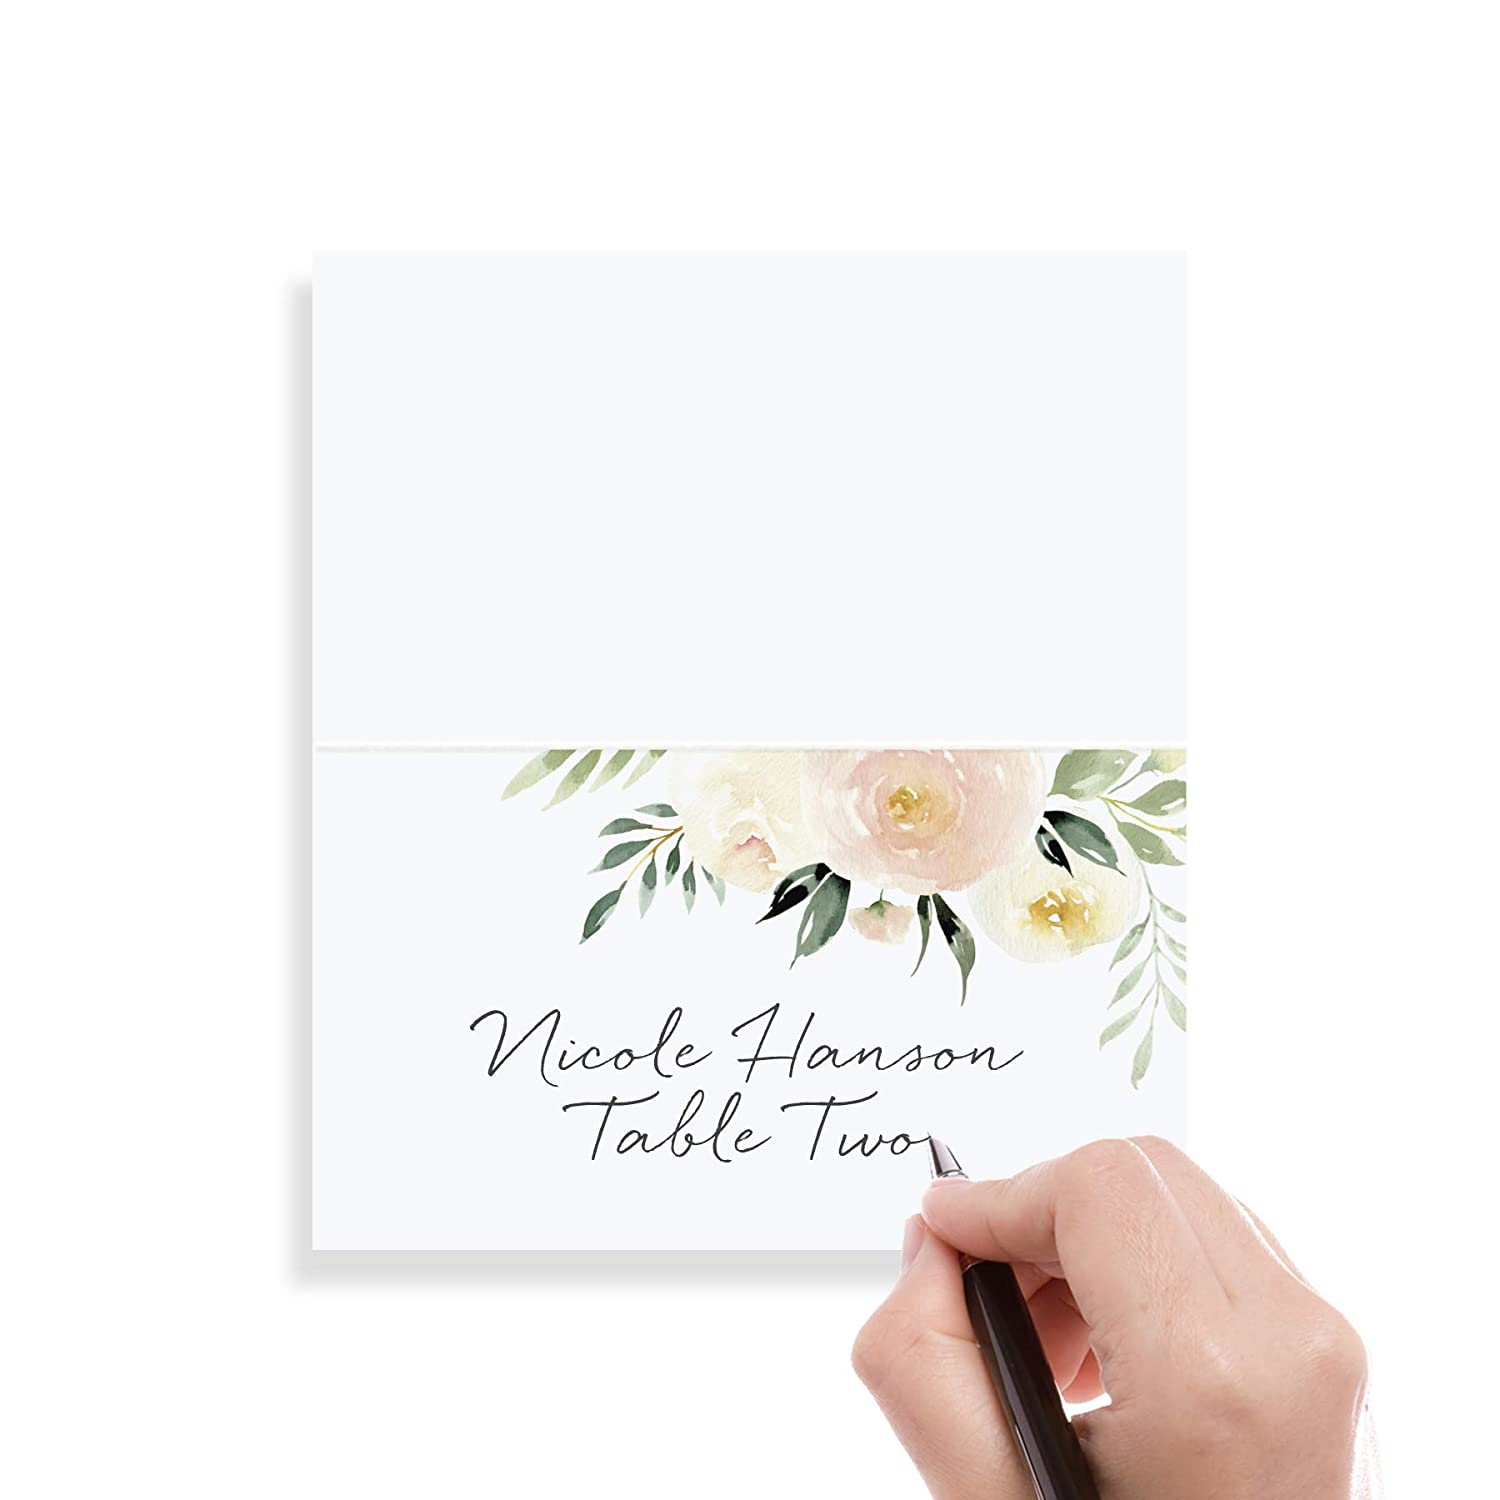 Floral Place Cards for Wedding or Party Seating Place Cards for Tables 50 Pack Scored for Easy Folding from Bliss Paper Boutique Blush Flower Design 2 x 3.5 inches